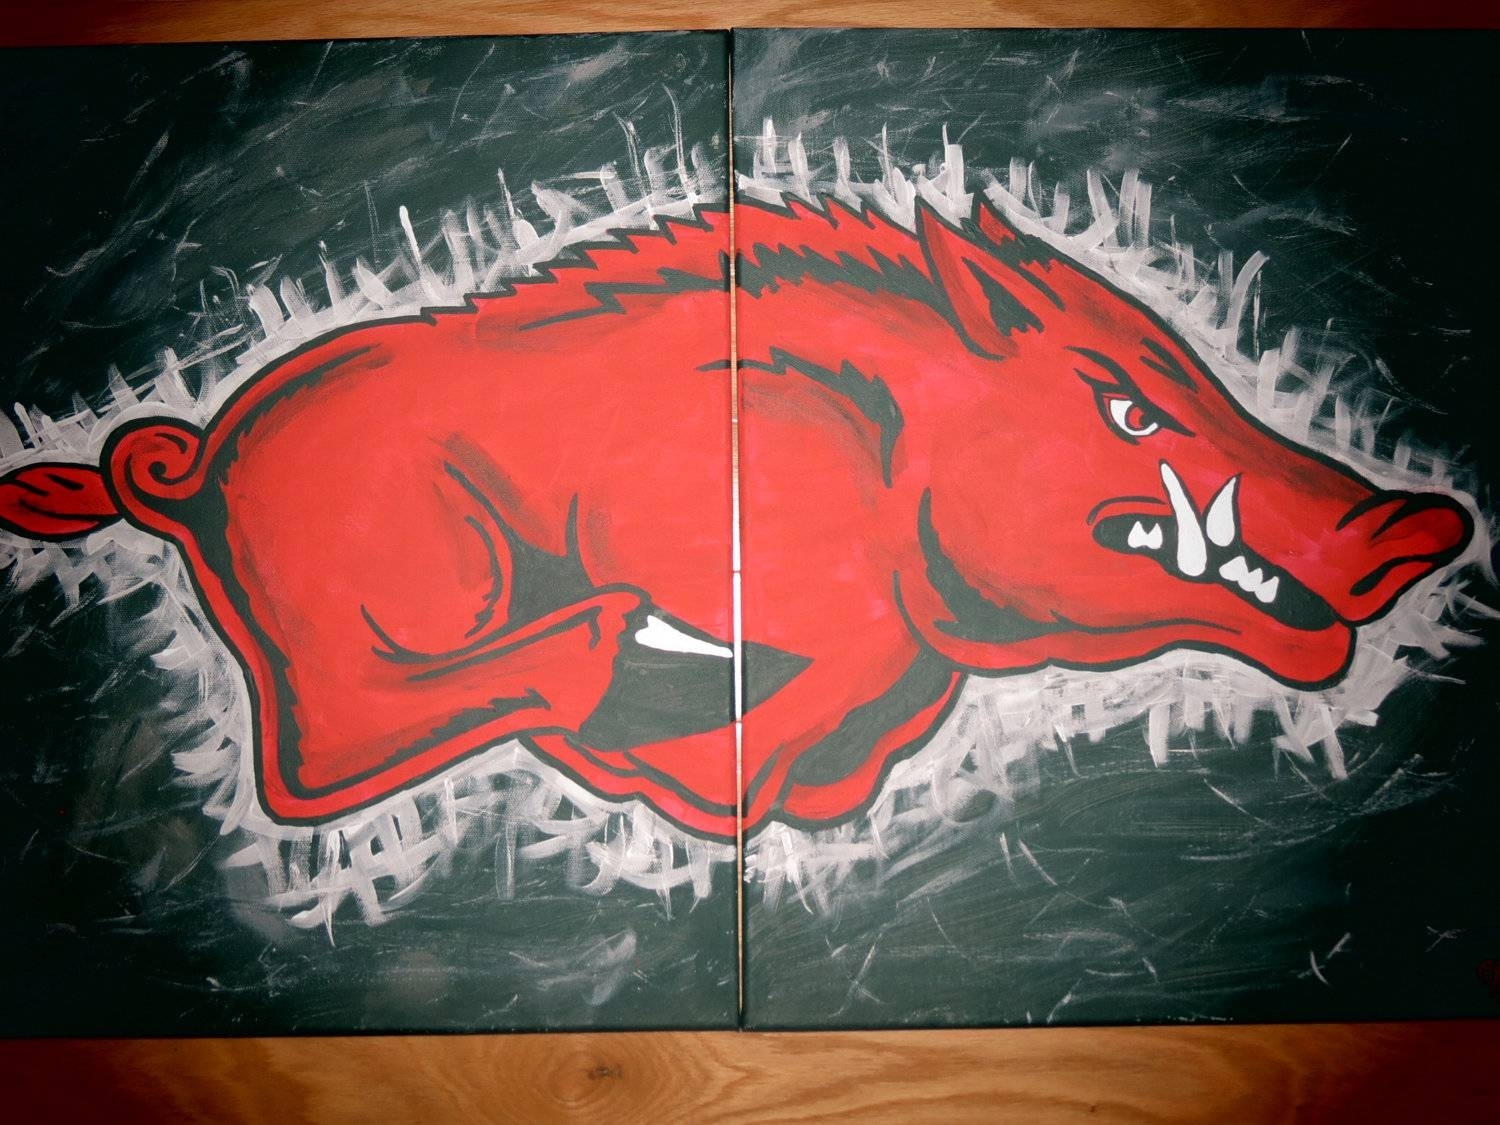 Officially Licensed Arkansas Razorback Paintings Free Throughout Latest Razorback Wall Art (Gallery 16 of 25)